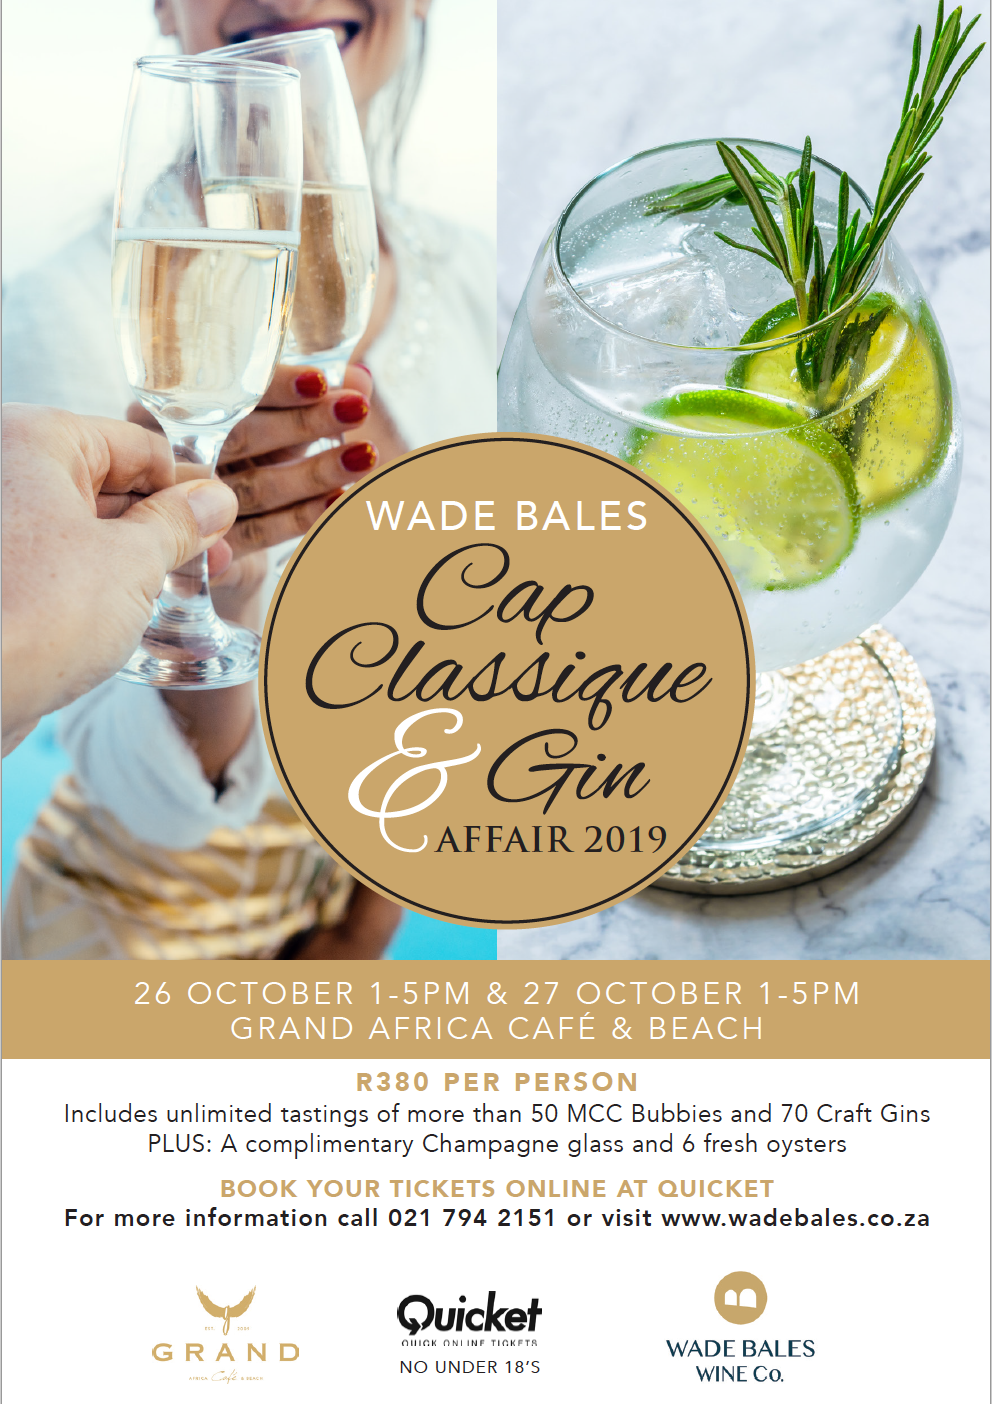 Let's meet at the beach and celebrate Summer in style at the Wade Bales Cap Classique and Gin Affair photo